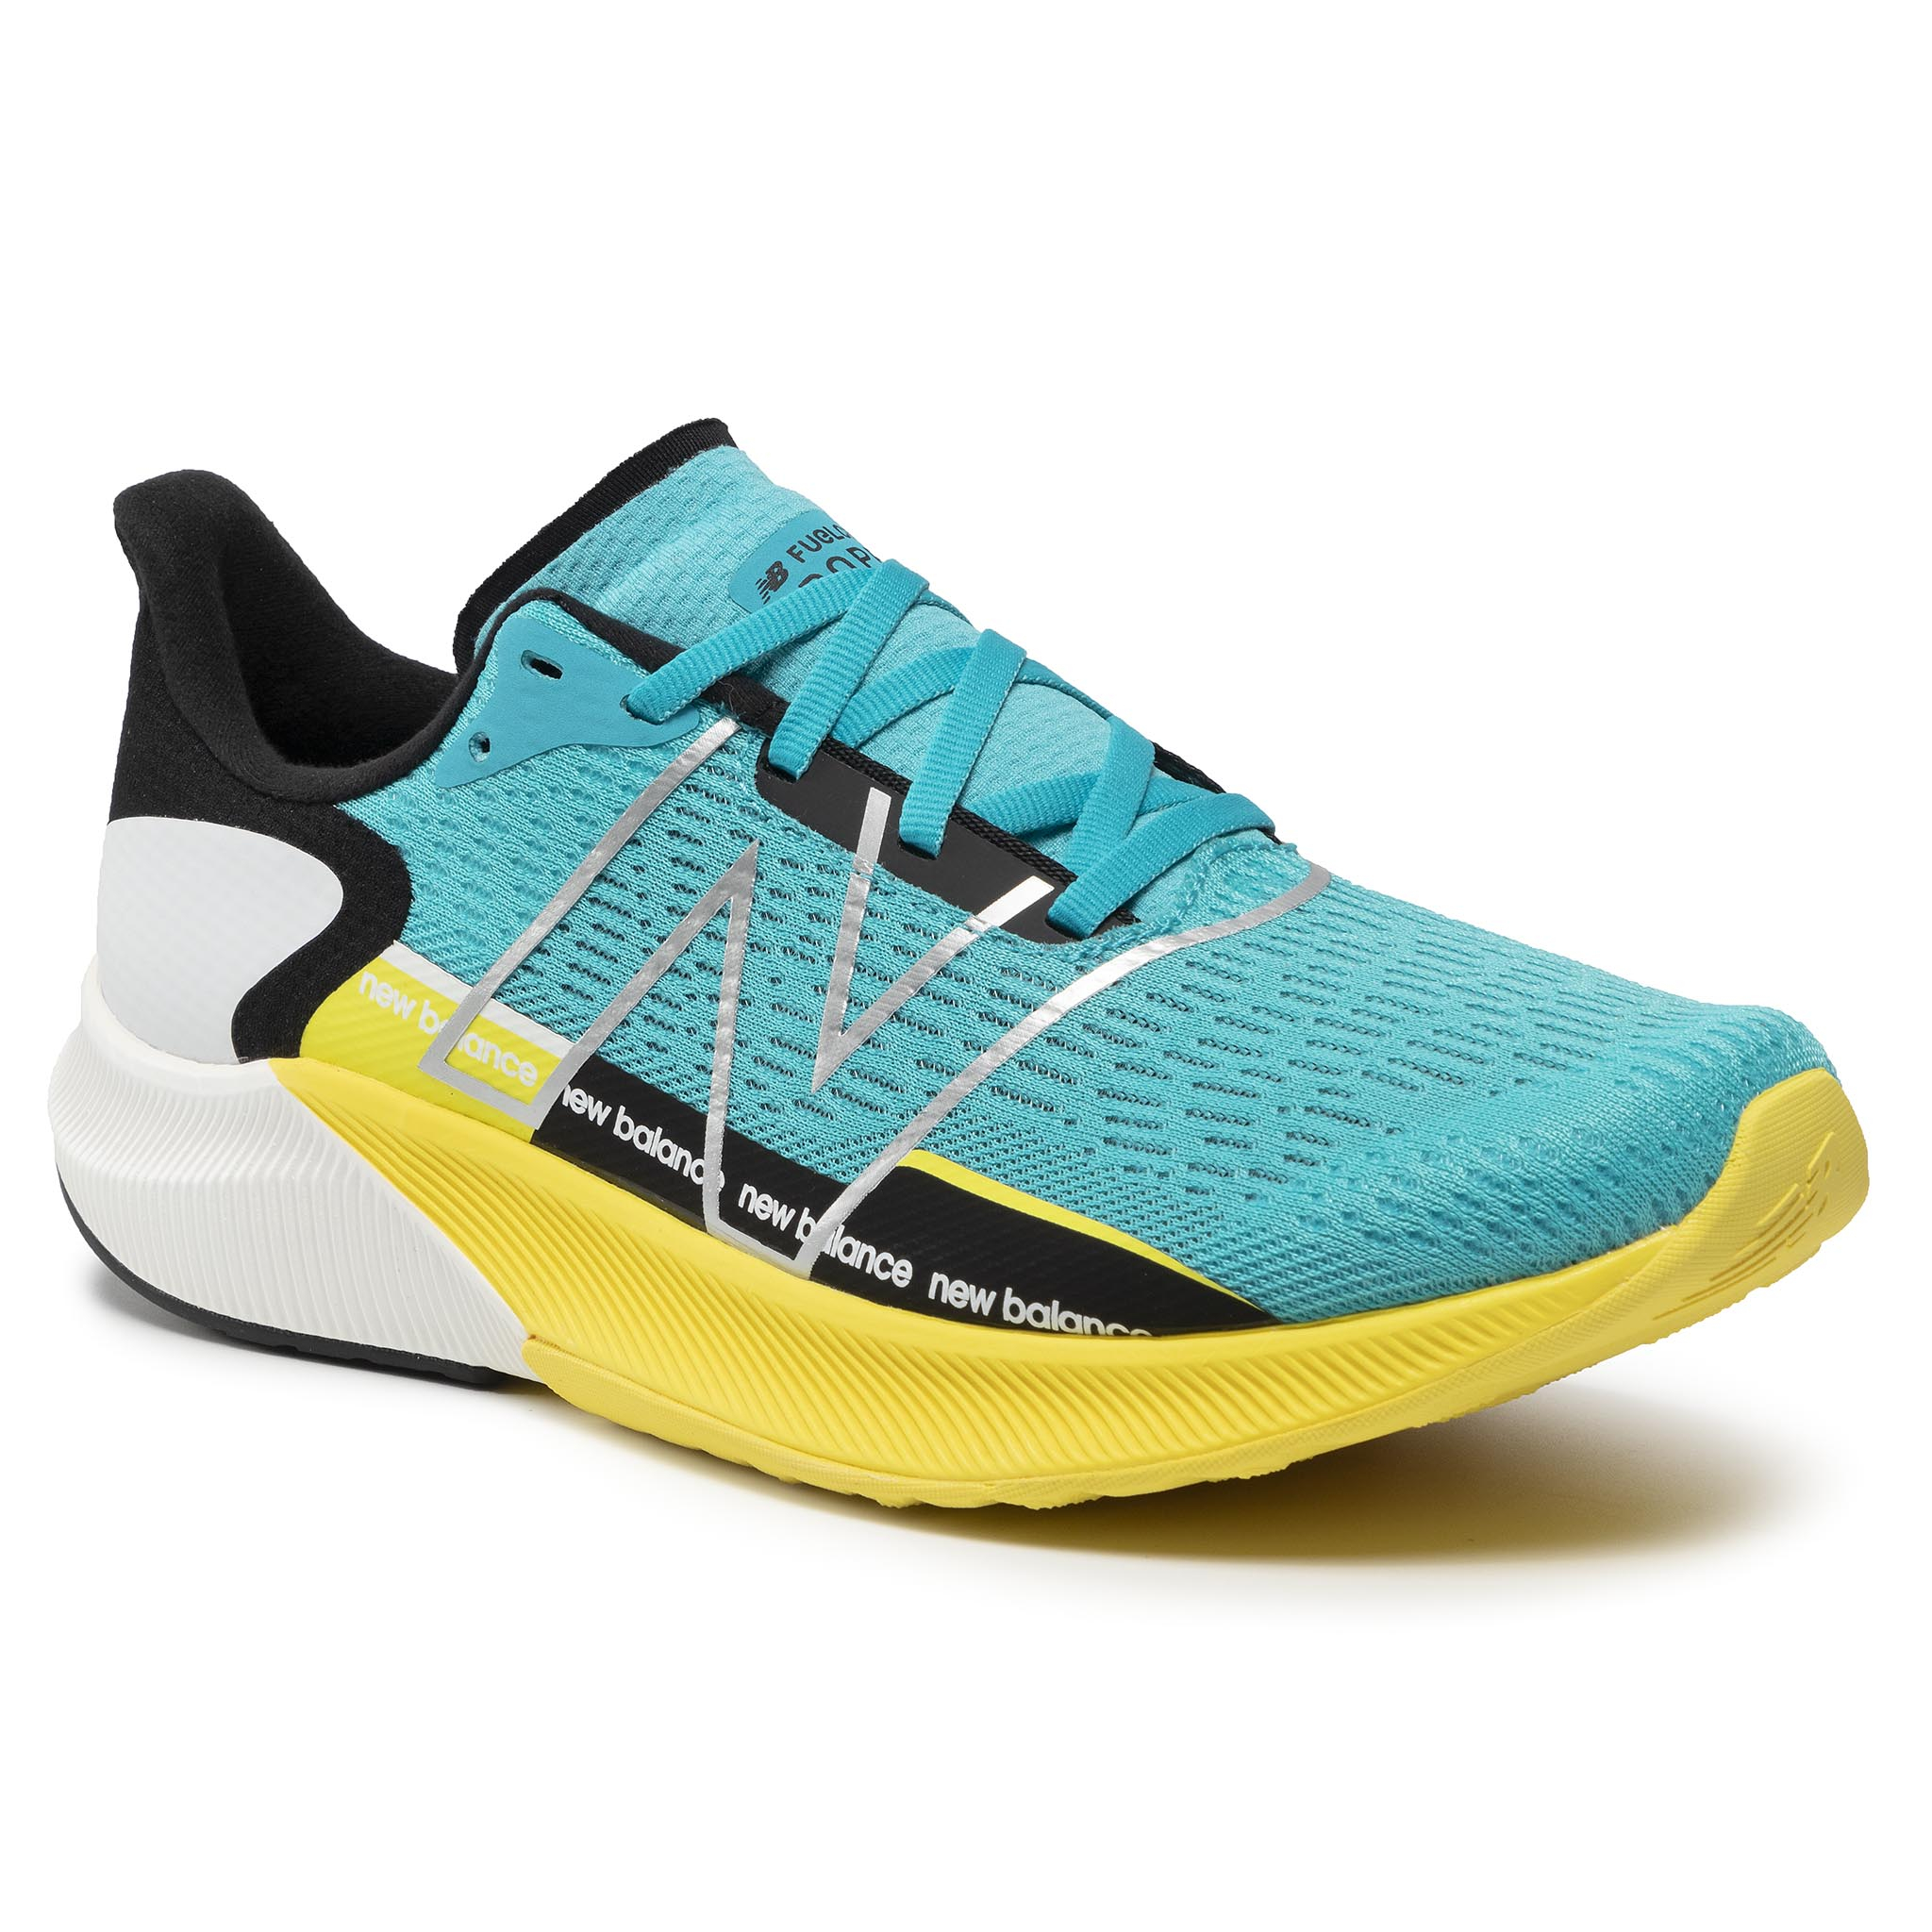 Batai NEW BALANCE - Fuelcell Propel MFCPRCV2 Mėlyna